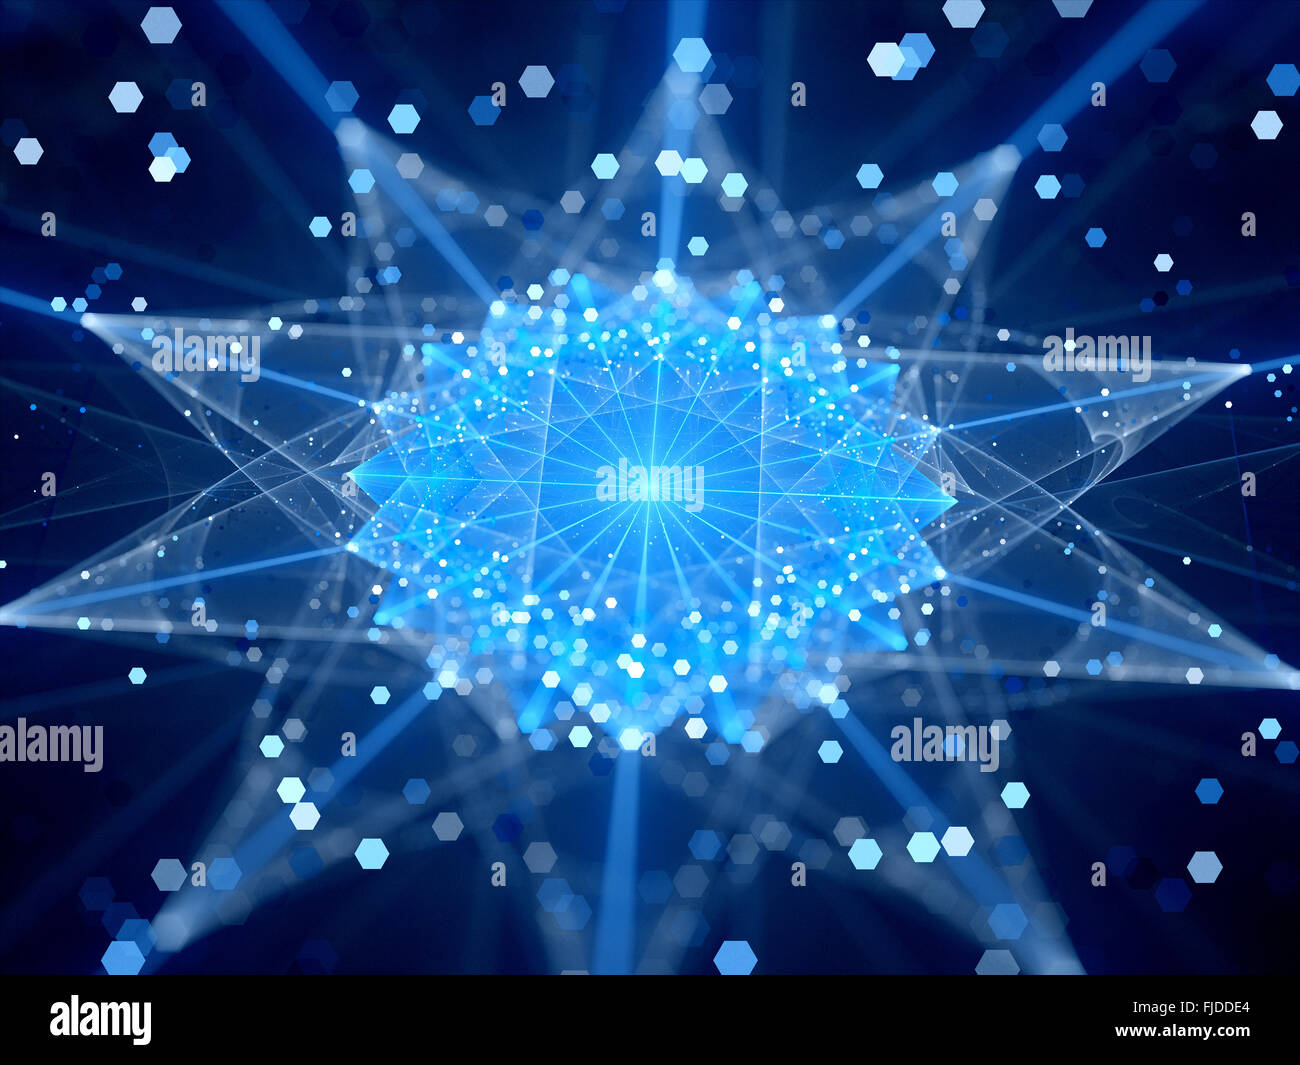 Blue glowing connections in cyberspace, computer generated abstract background - Stock Image